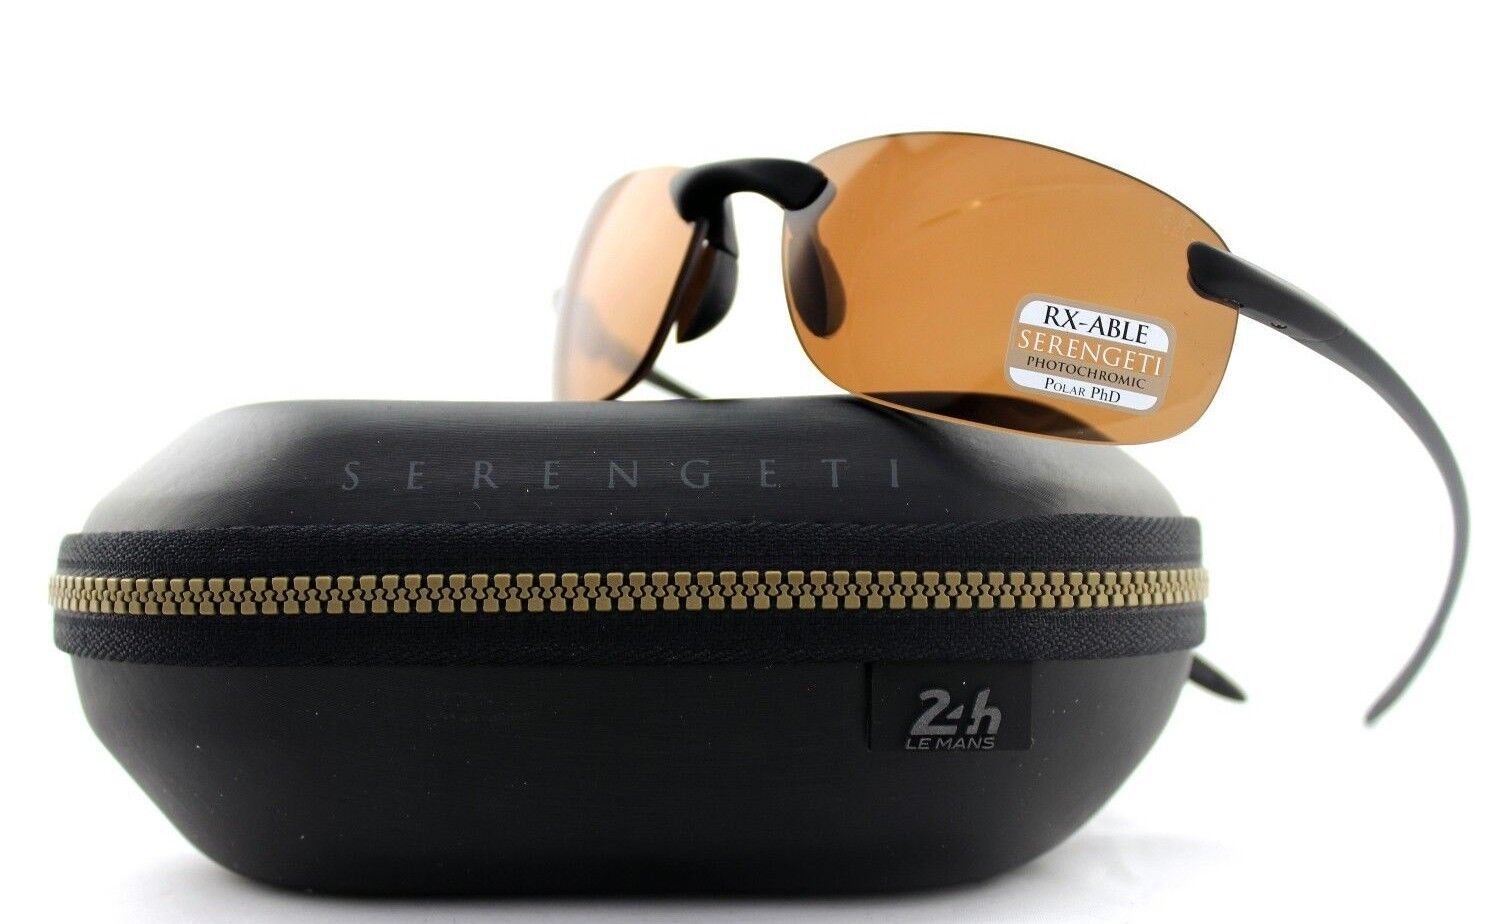 79383c1776 Polarized Serengeti NUVOLA Le Mans 24h Satin Black PhD Drivers ...